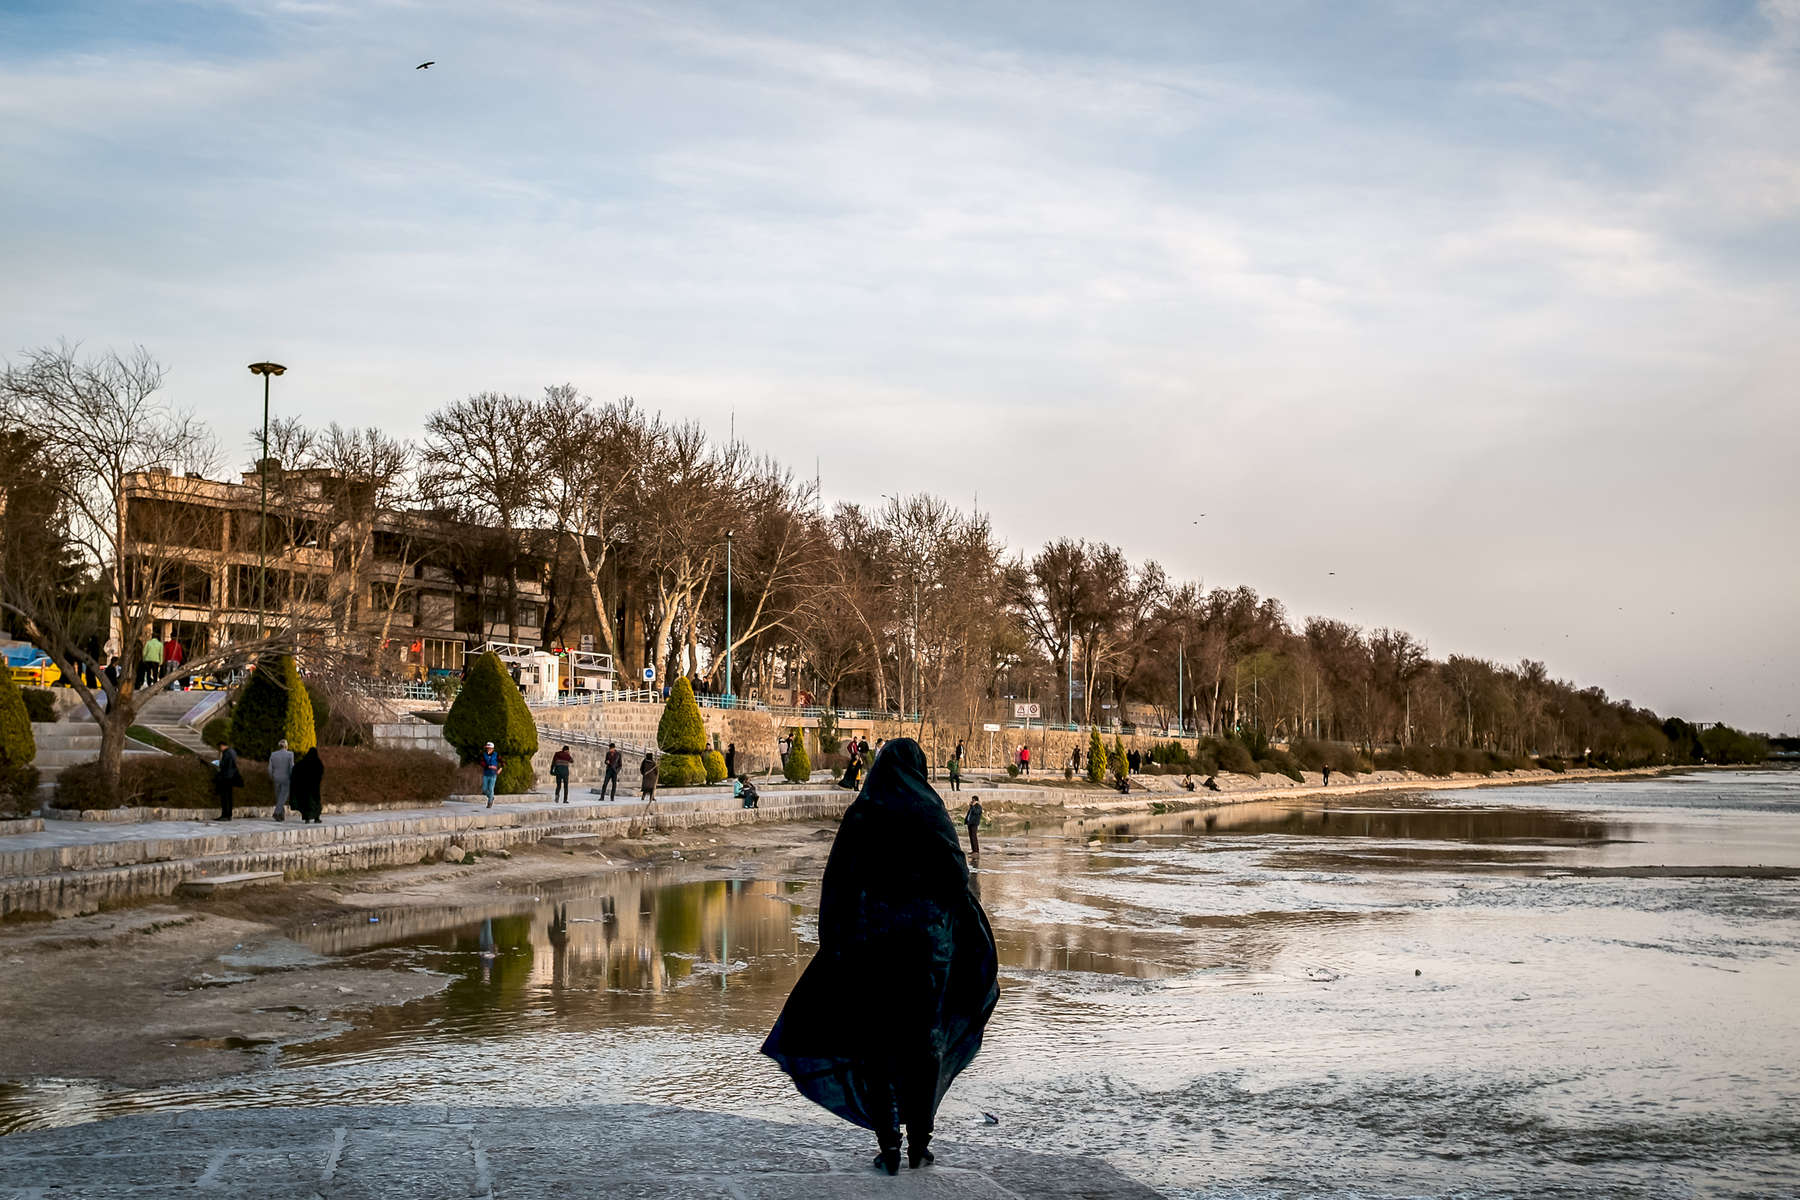 A woman enjoying the view from the foundations of Khaju Bridge, Isfahan. The bridge was built by the Persian Safavid king, Shah Abbas II around 1650 AD1650 AD